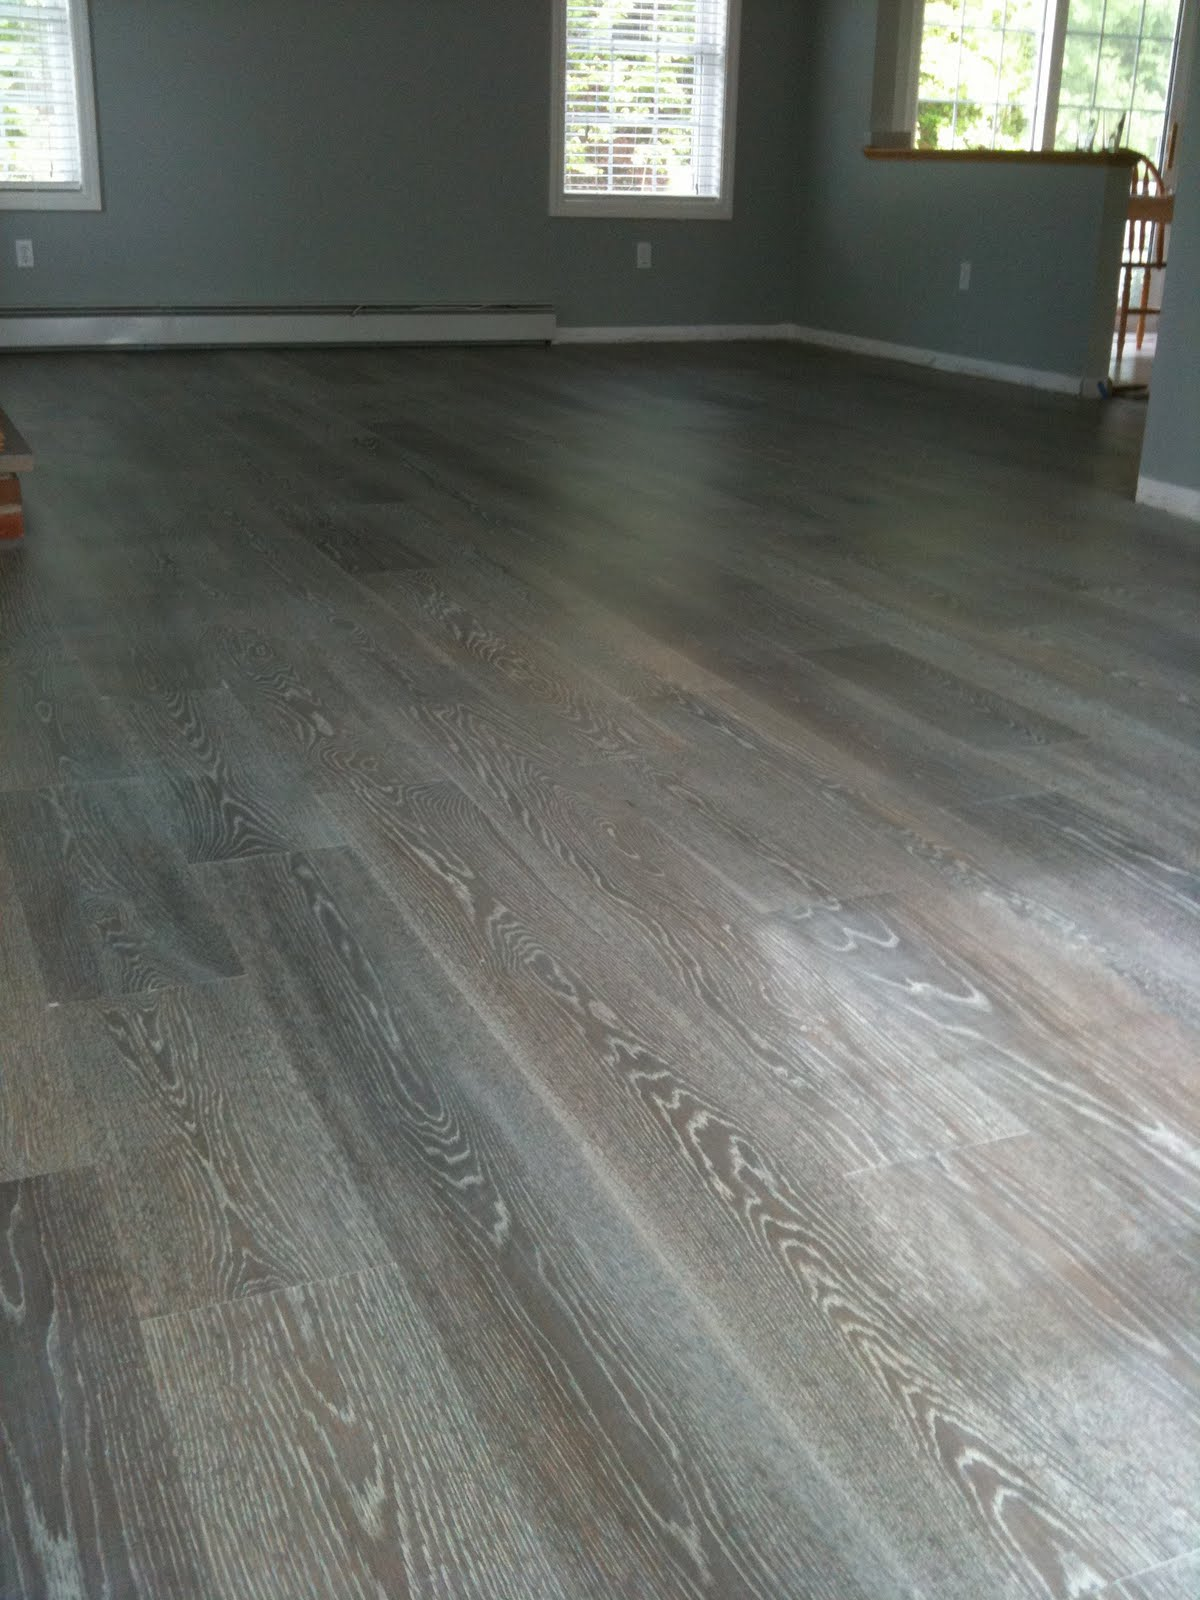 true wesson interior design project gray hardwood floors With gray brown hardwood floors